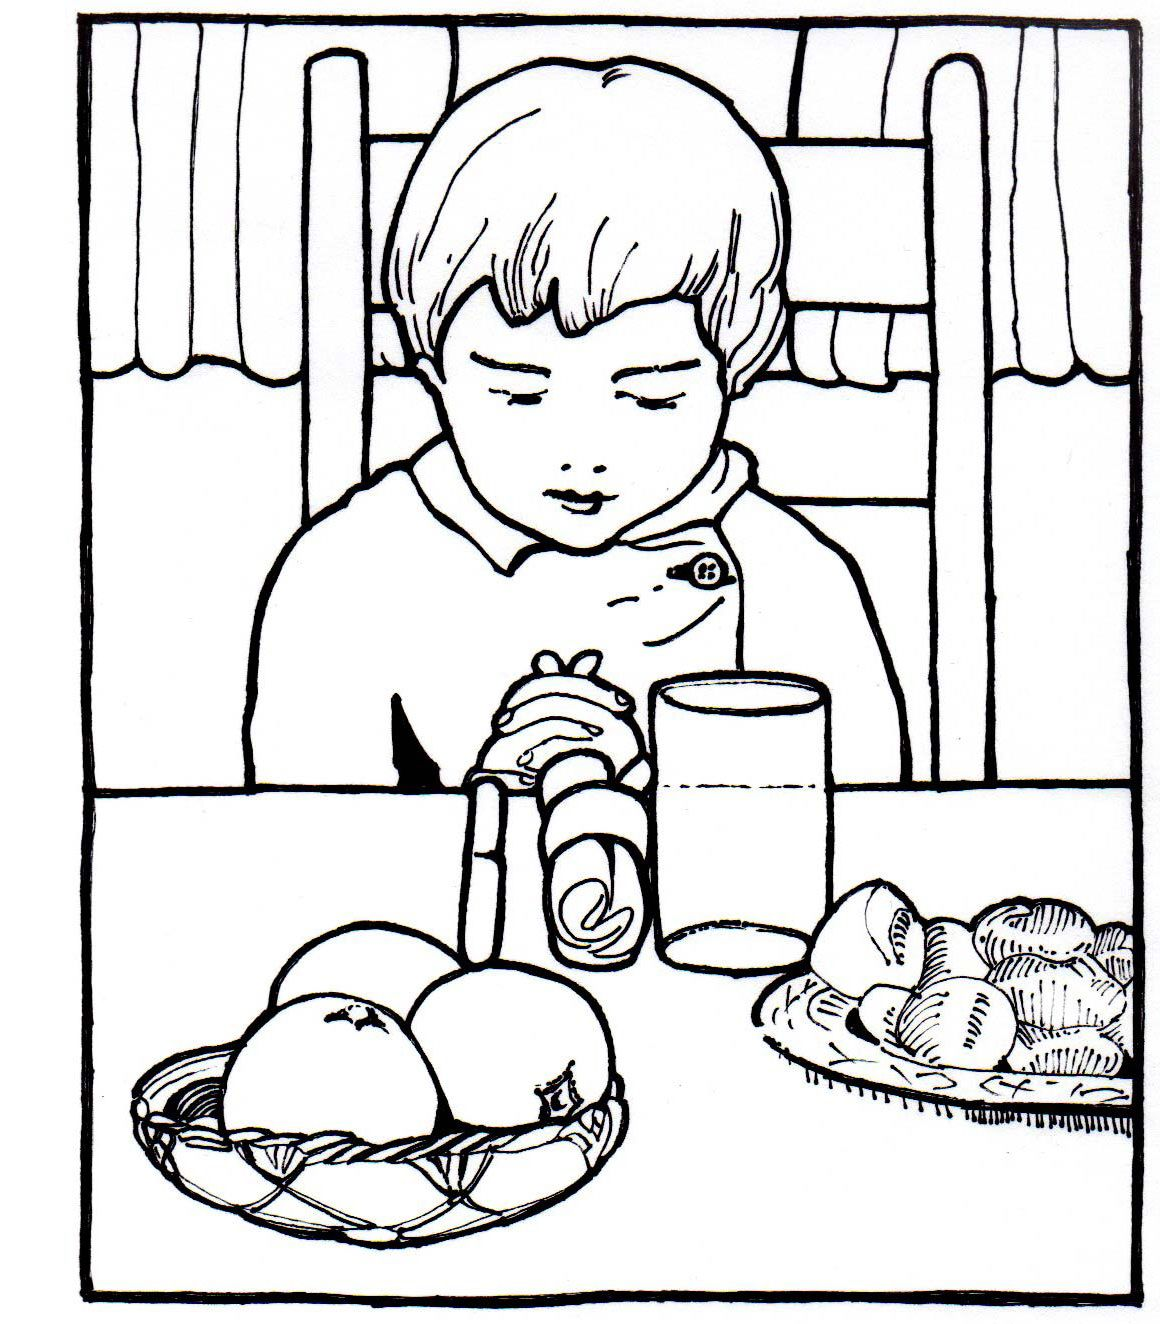 Clip Art Children Praying Coloring Page praying child coloring page futpal com futpal